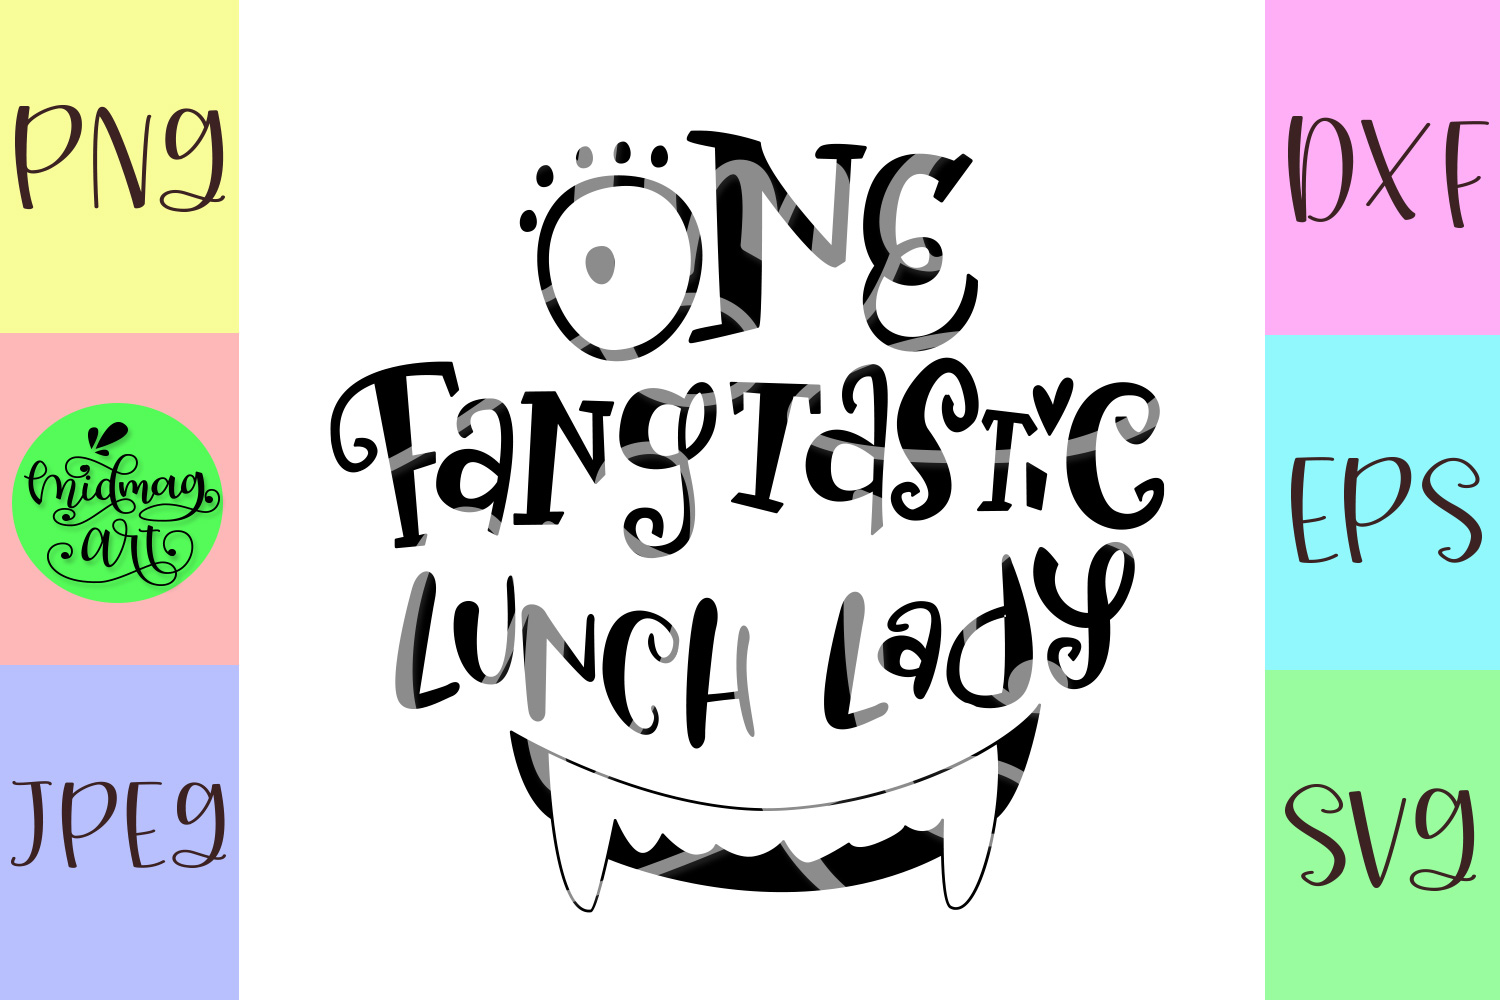 One fangtastic lunch lady svg, lunch lady halloween svg example image 2